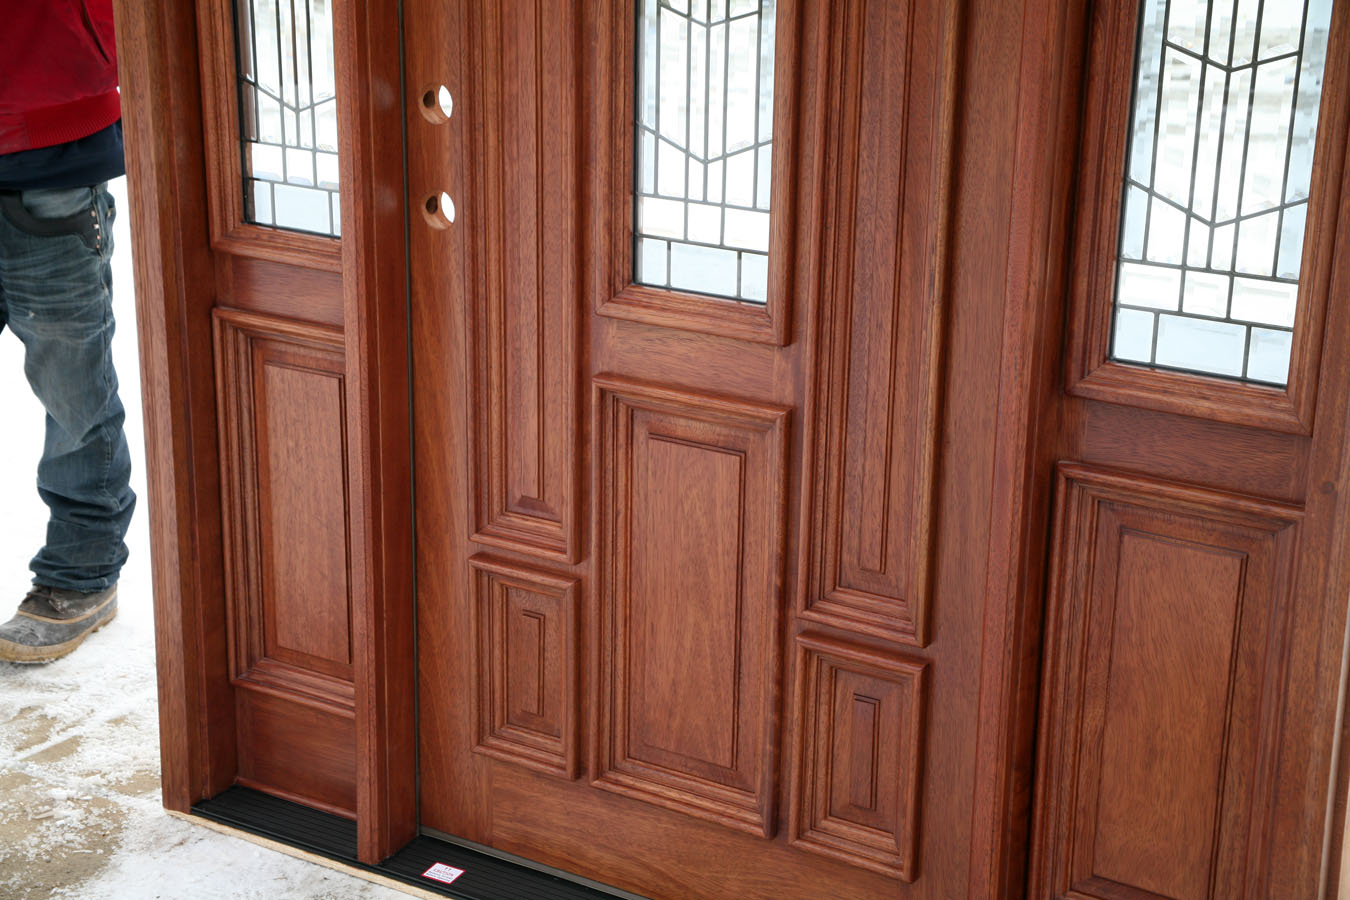 Exterior Front Doors with Glass 1350 x 900 · 224 kB · jpeg